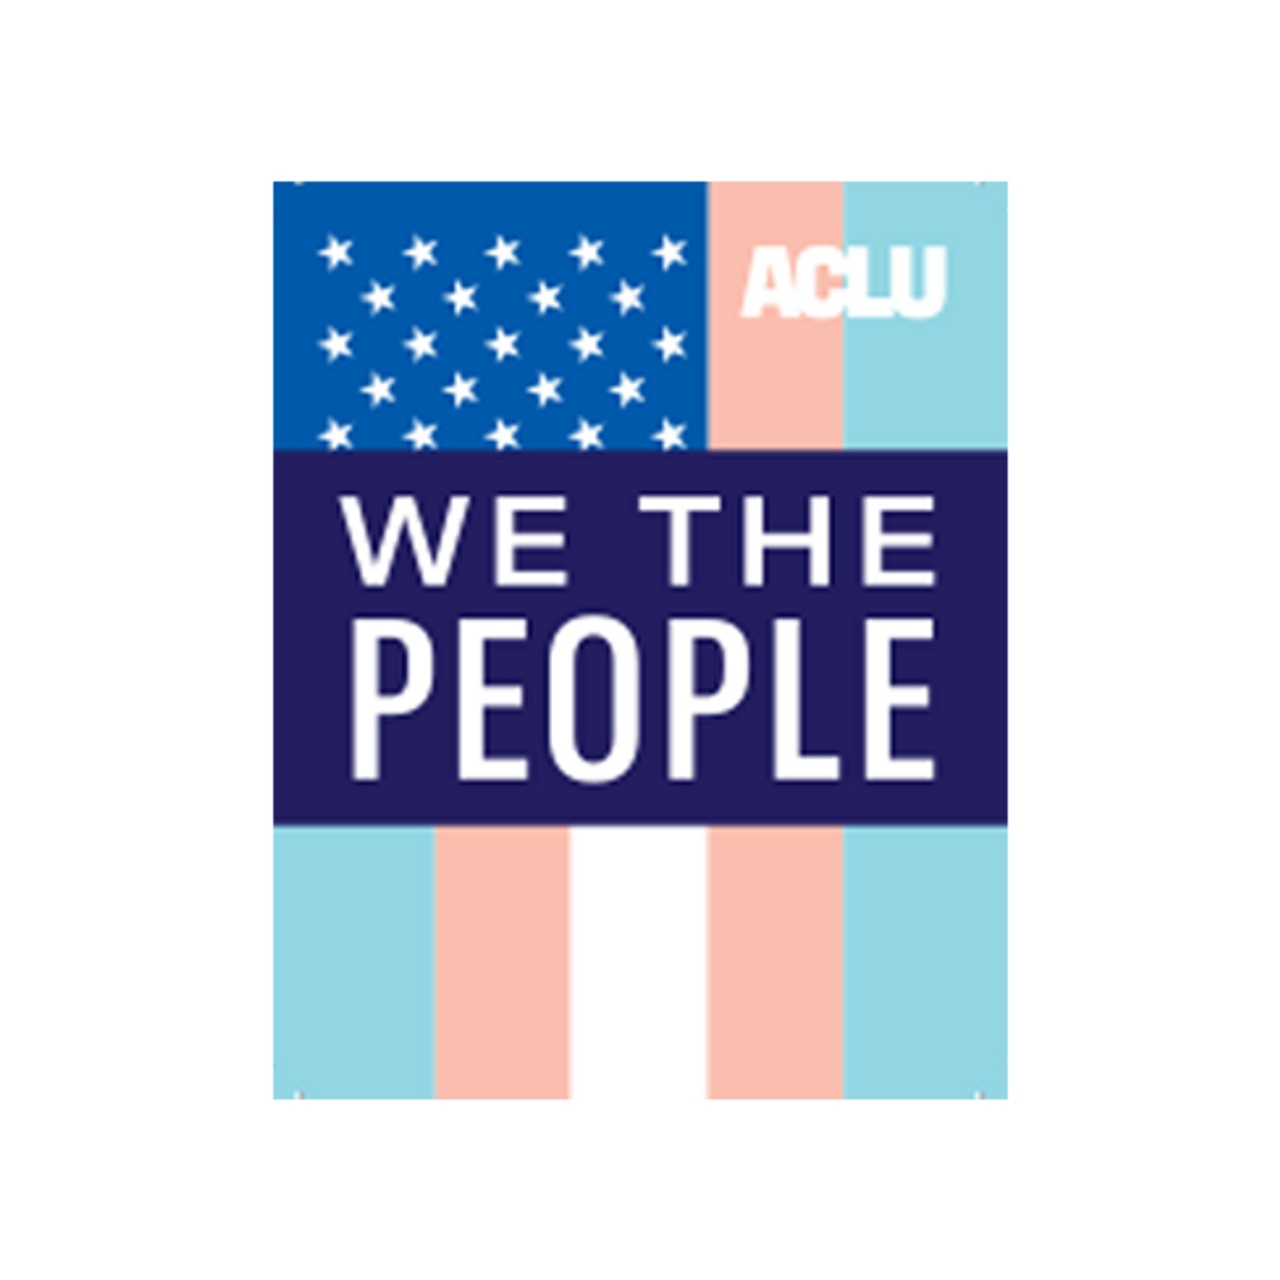 We The People Trans Flag Sticker Aclu